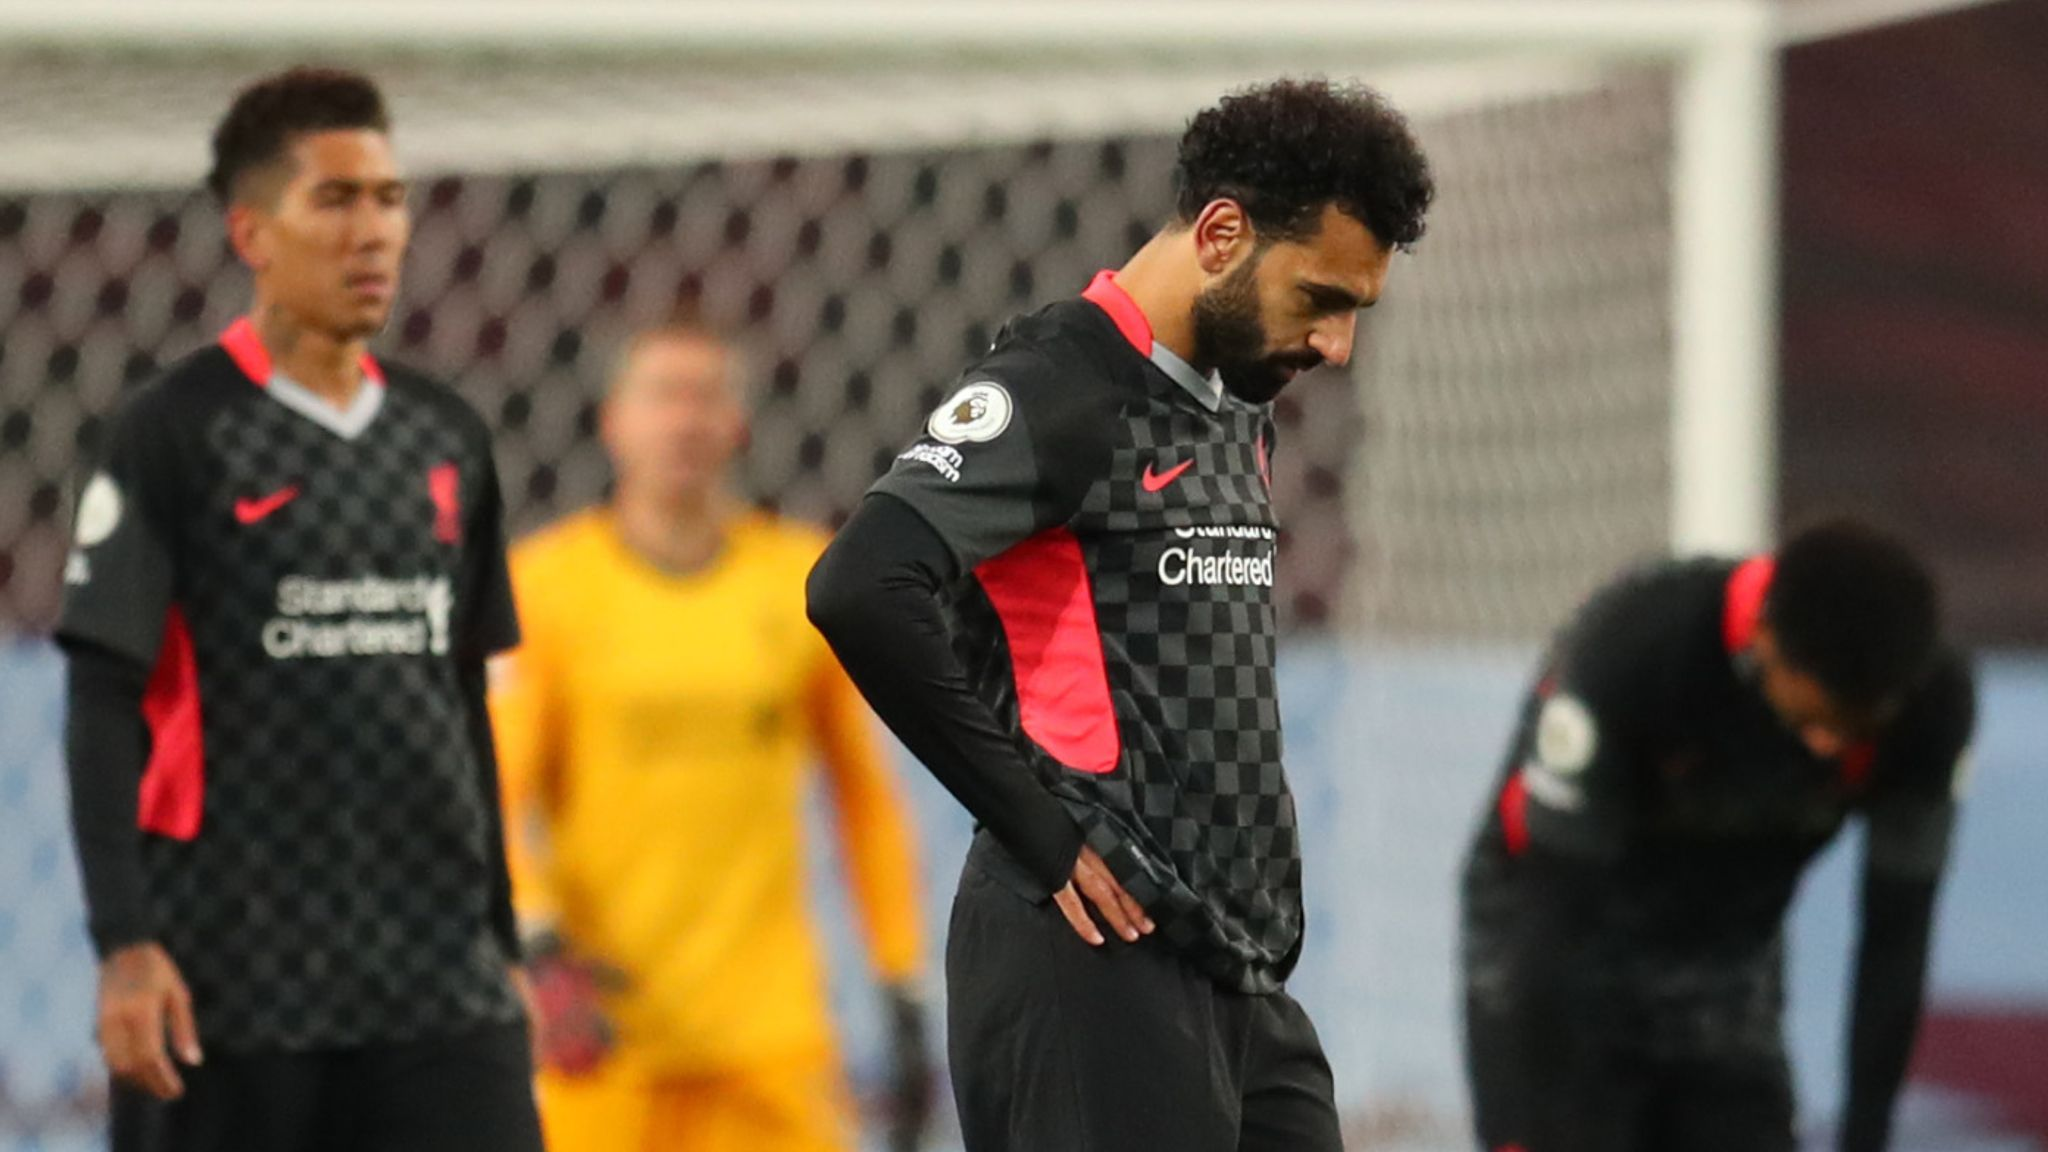 Liverpool Thrashed 7 2 By Aston Villa What Went Wrong For Jurgen Klopp S Defending Champions Football News Sky Sports